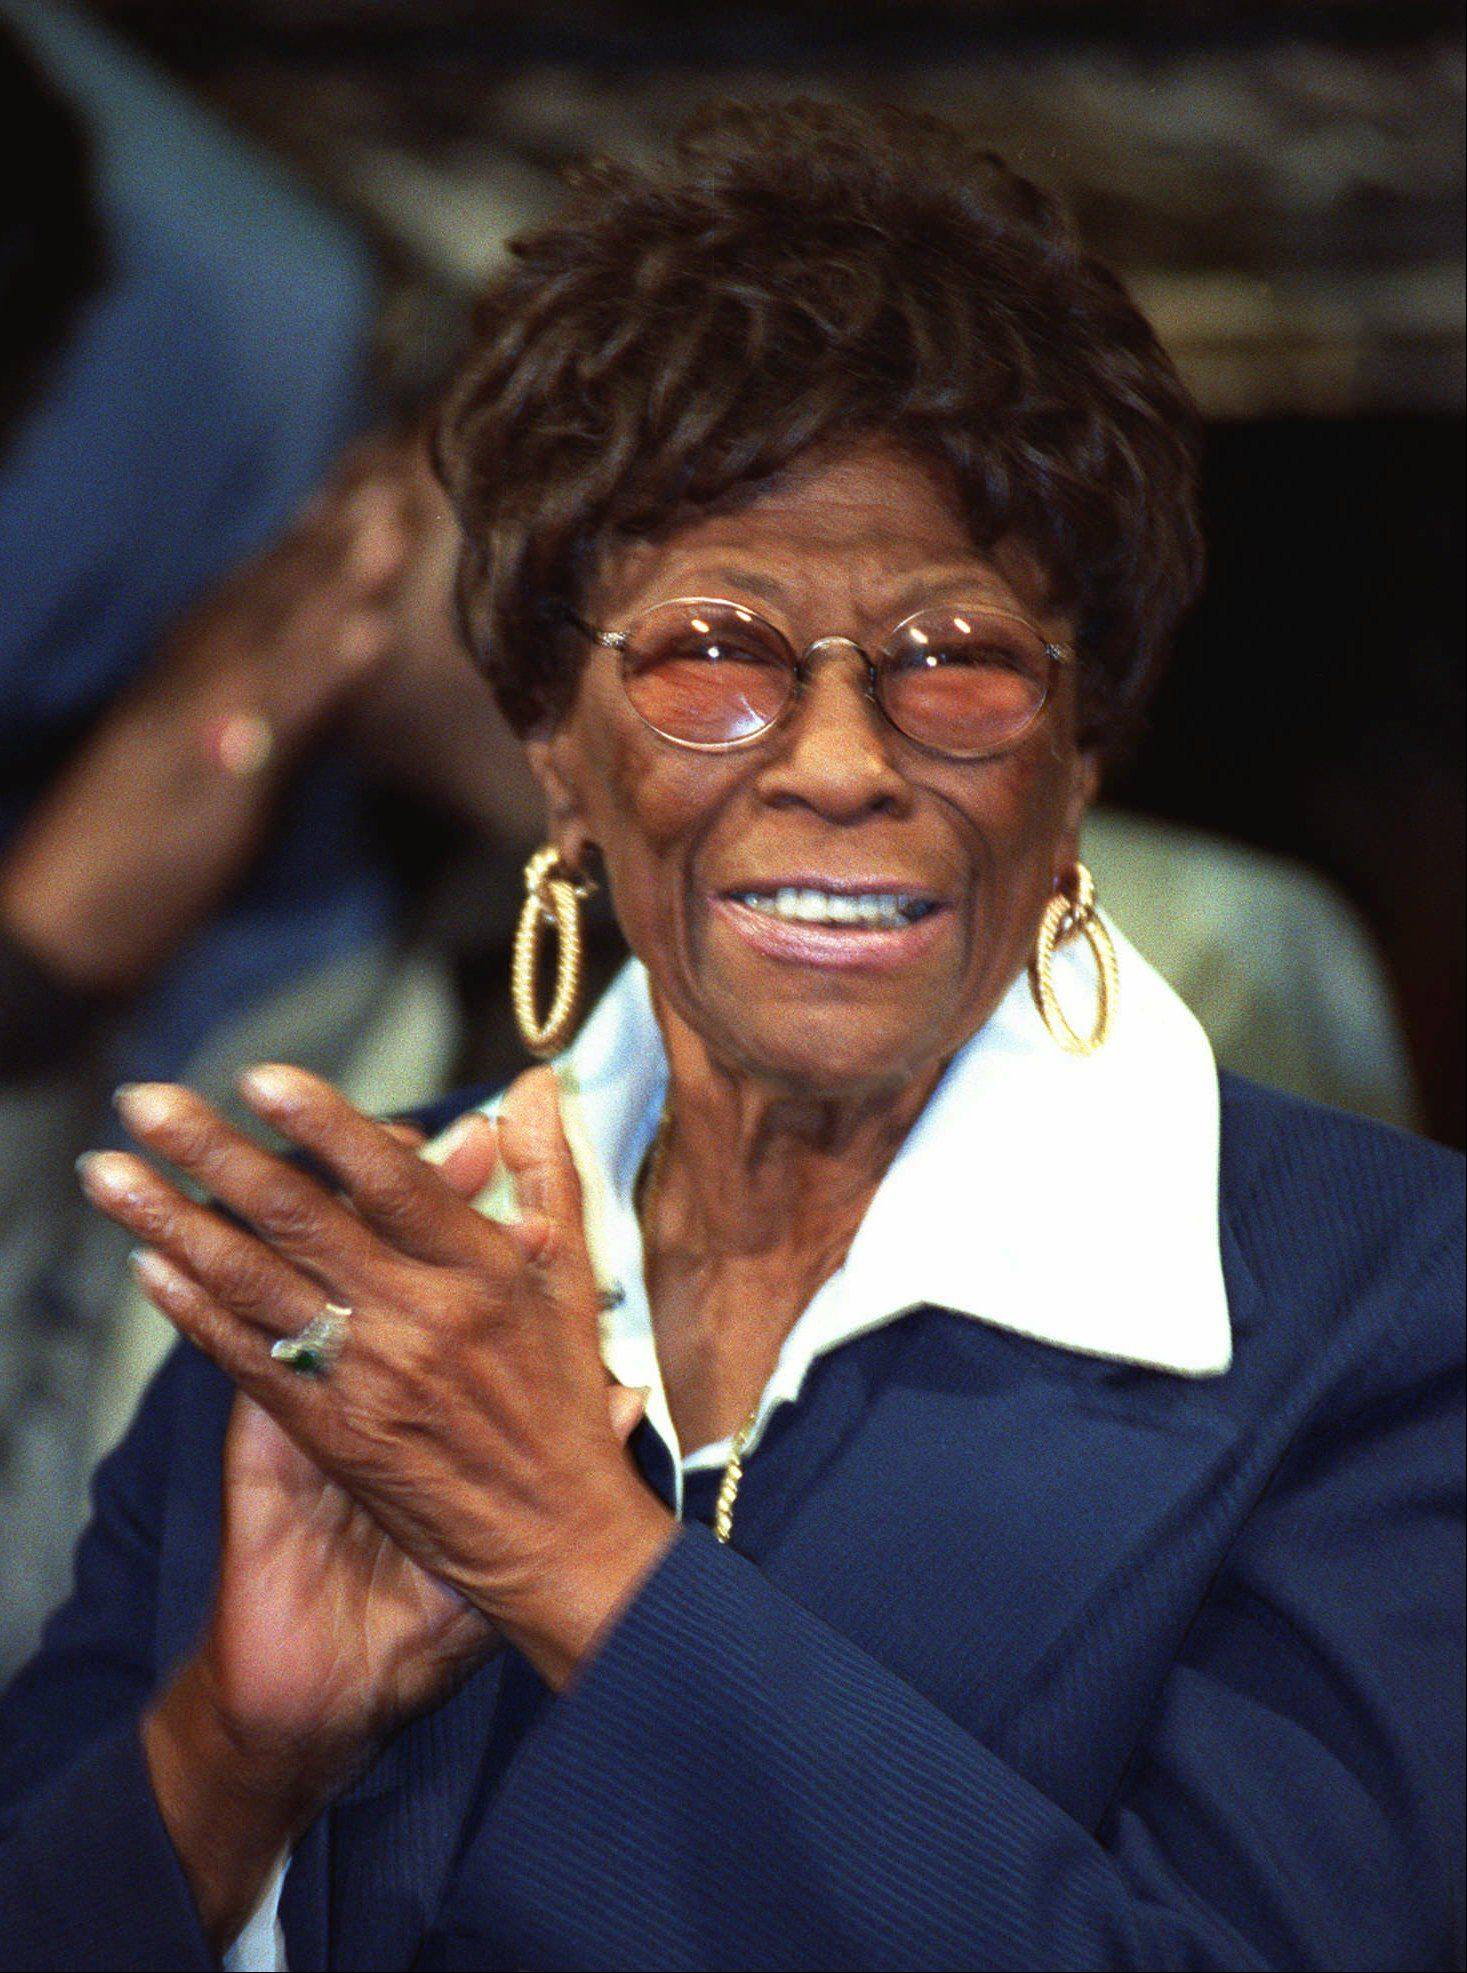 College of Lake County will host a tribute to Ella Fitzgerald at its flagship Grayslake campus at 8 p.m. Friday, Jan. 31. She is shown here in 1992.